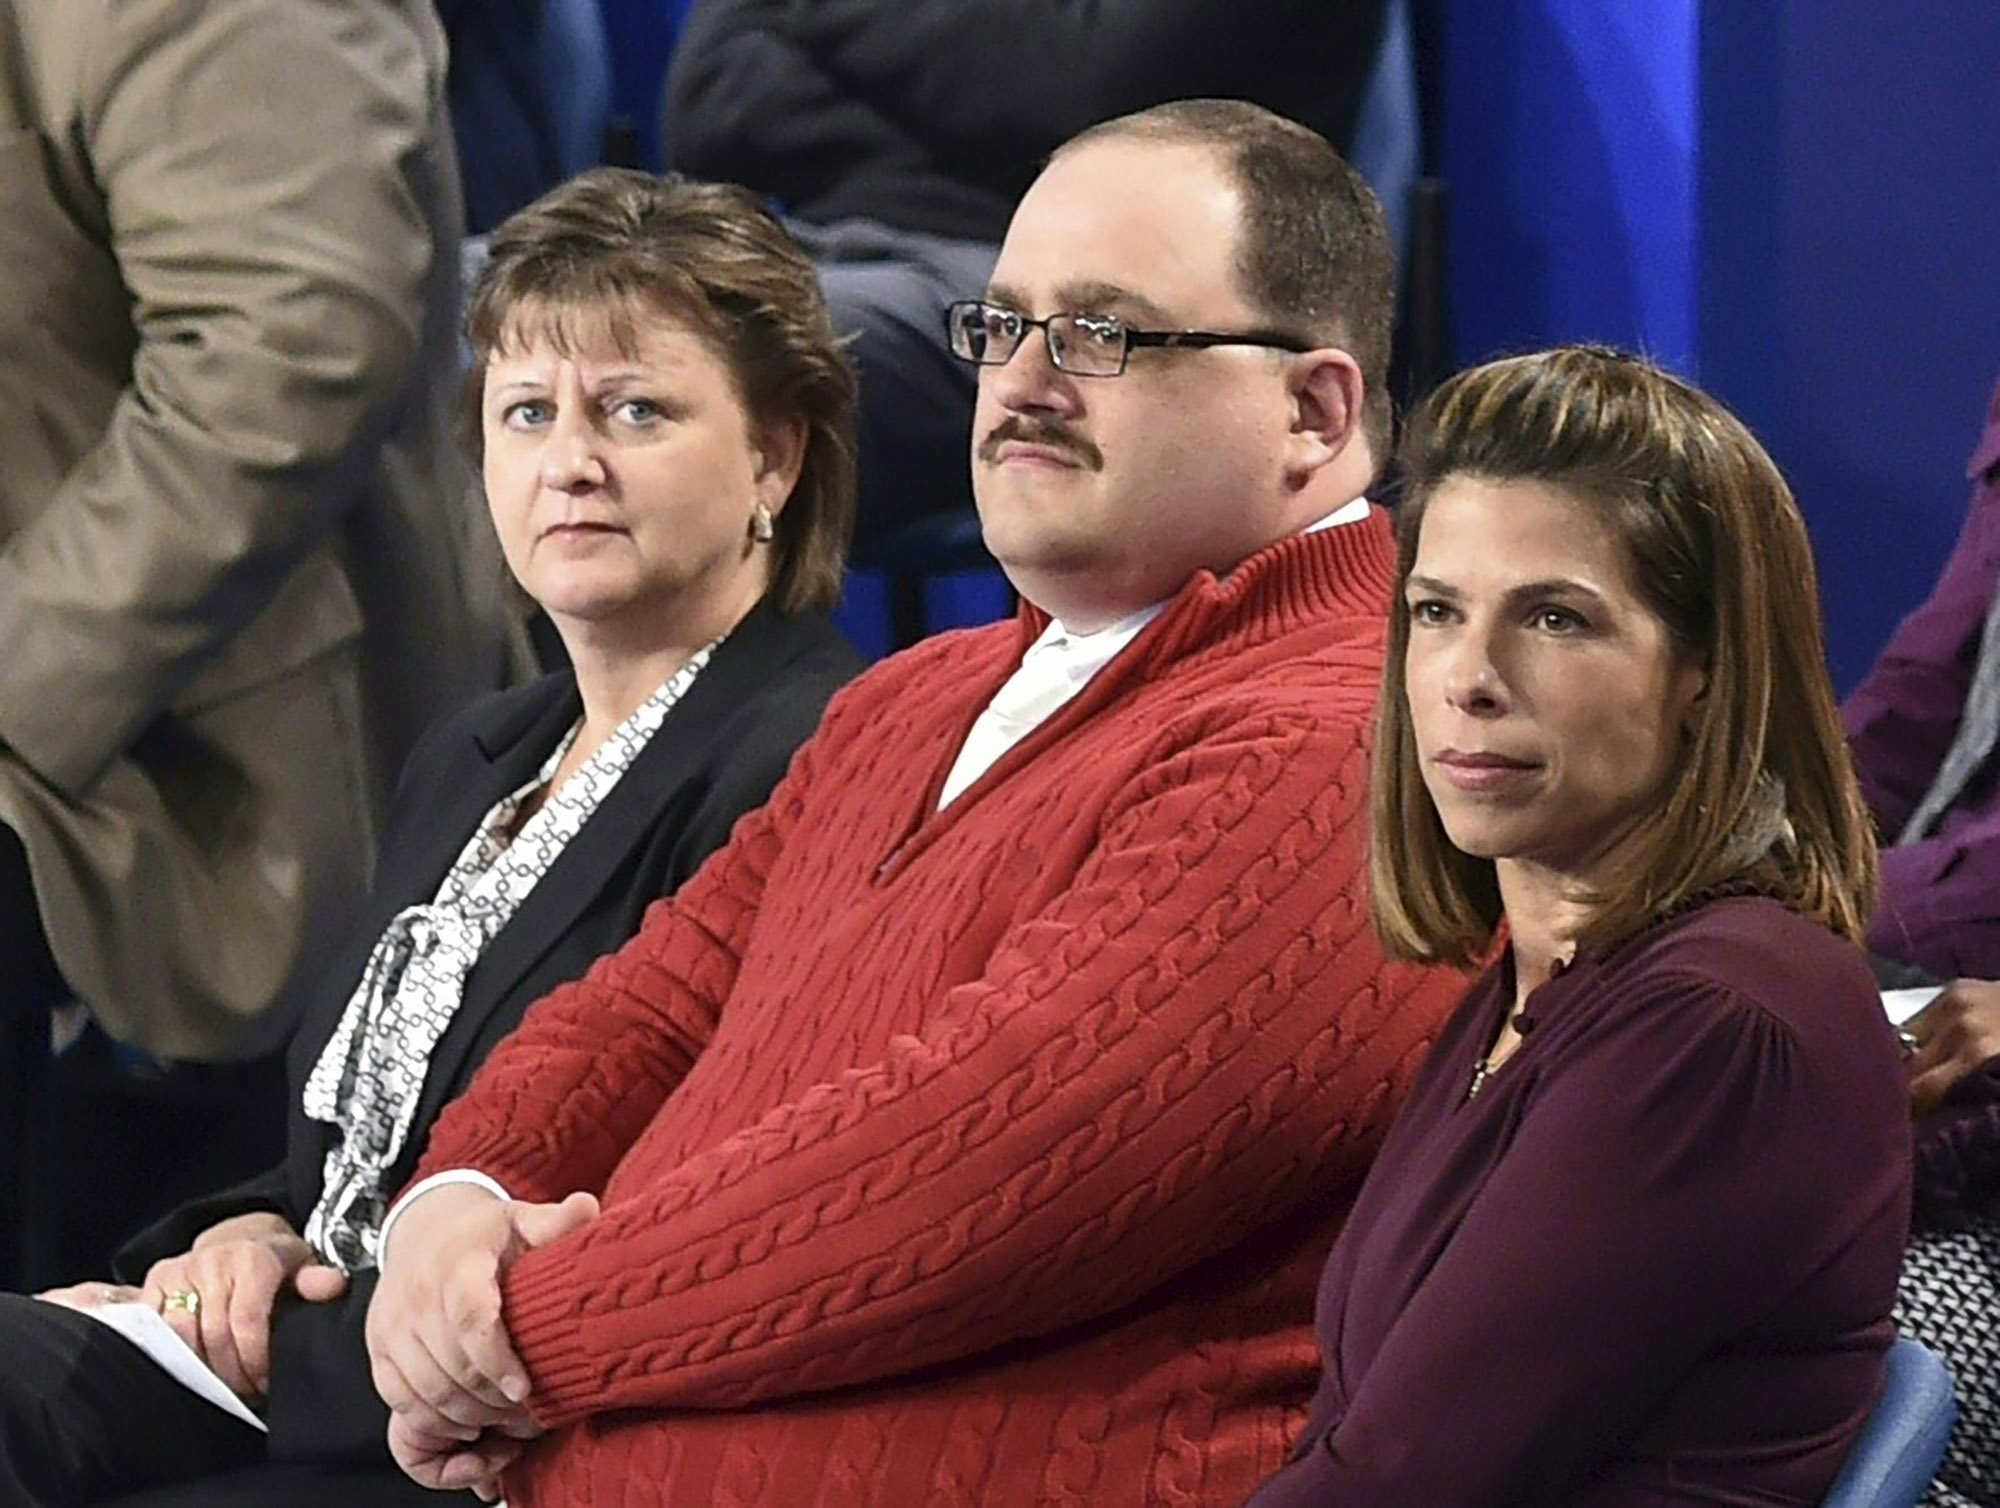 Ken Bone (C) listens to US Democratic nominee Hillary Clinton and Republican nominee Donald Trump during the second presidential debate at Washington University in St. Louis on Oct. 9, 2016.